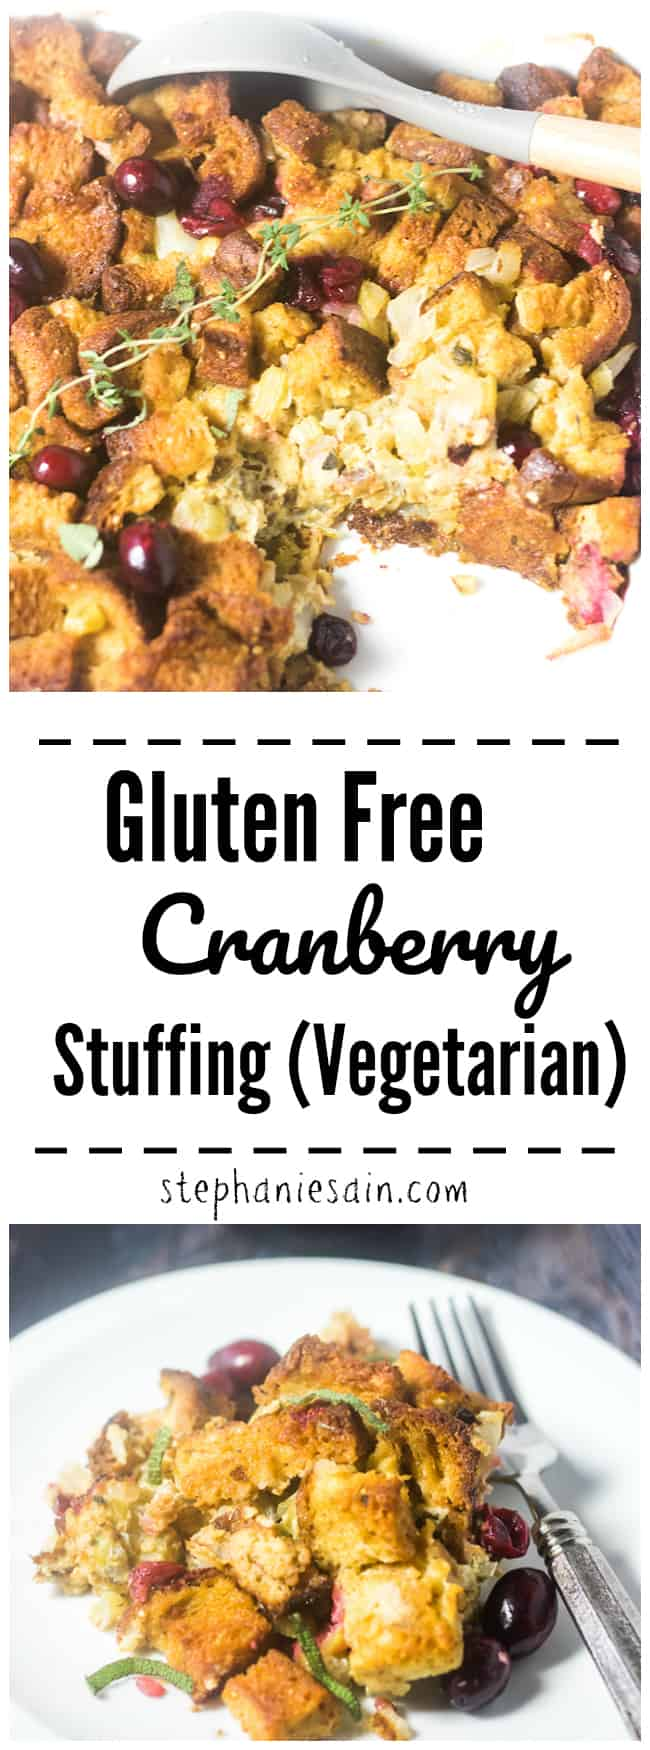 This Gluten Free Stuffing is moist, flavorful and filled with the traditional flavors of a classic stuffing. Cranberries, sage and thyme combined with toasty Gluten Free Bread cubes for the perfect holiday side or anytime you want a special stuffing. Vegetarian, Gluten Free, & Easy.